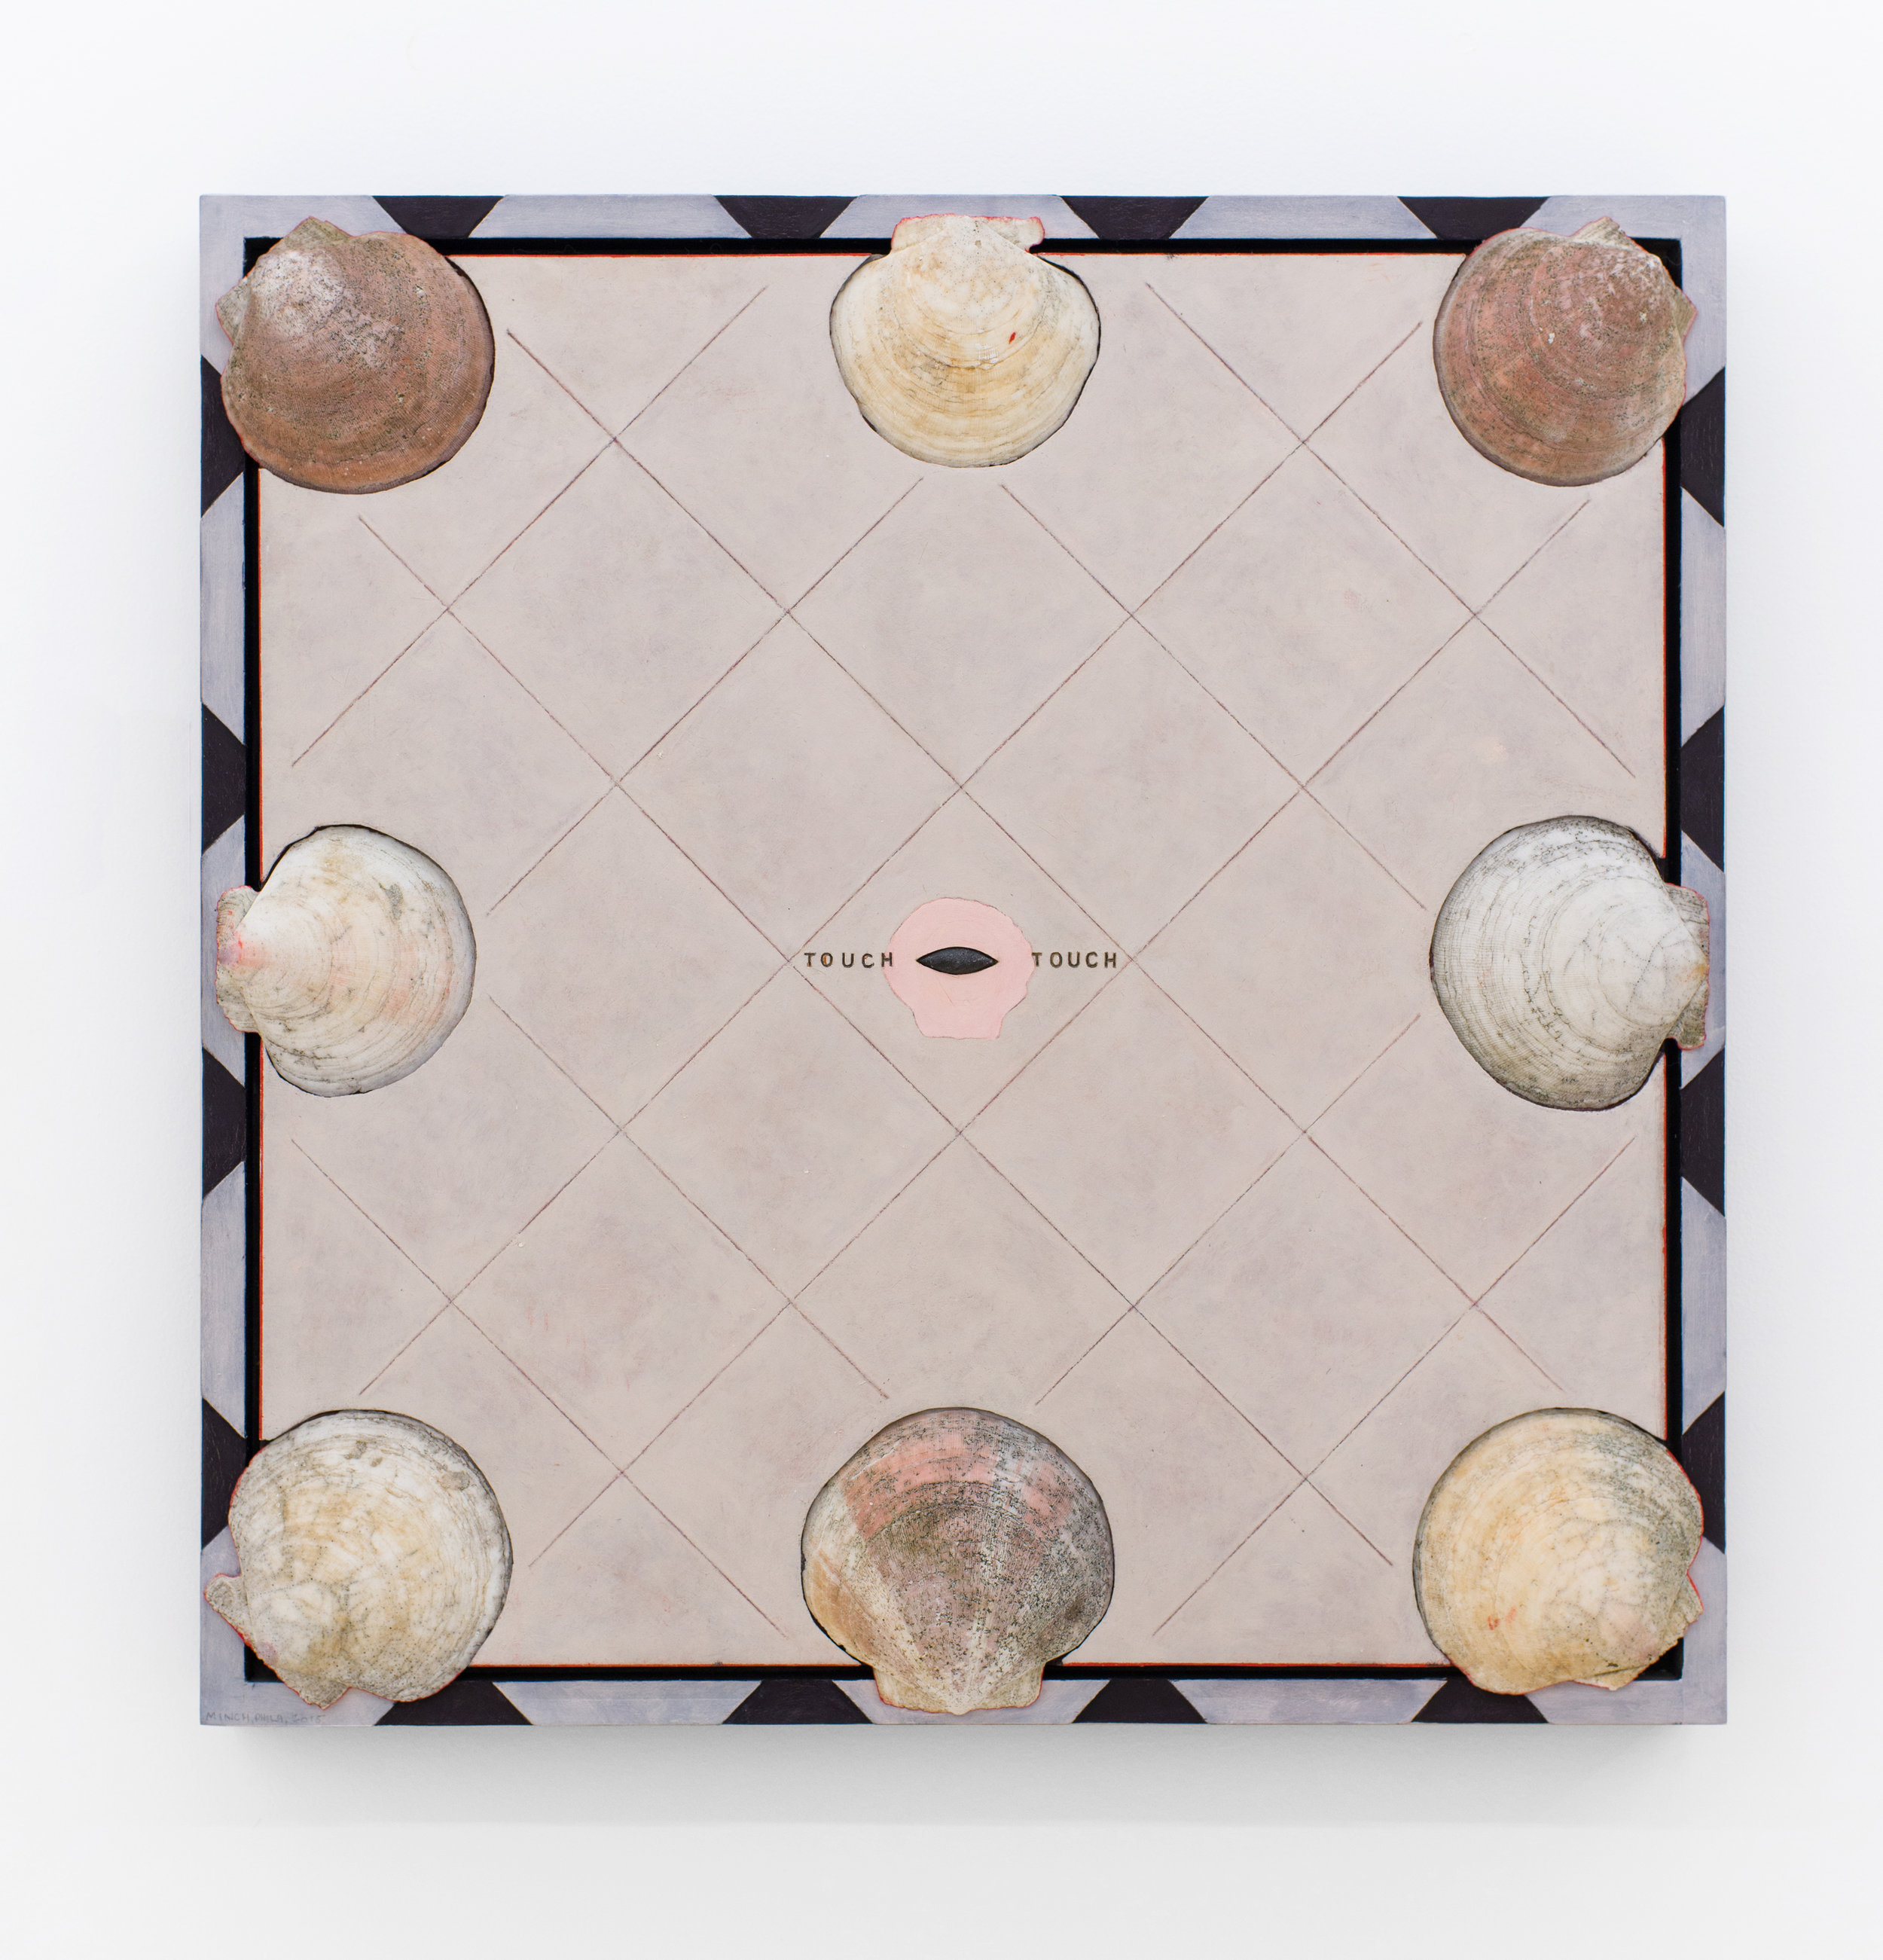 Anne Minich   Touch/Touch,  2014 Oil on wood with shells and found object 25.75 x 25.75 inches